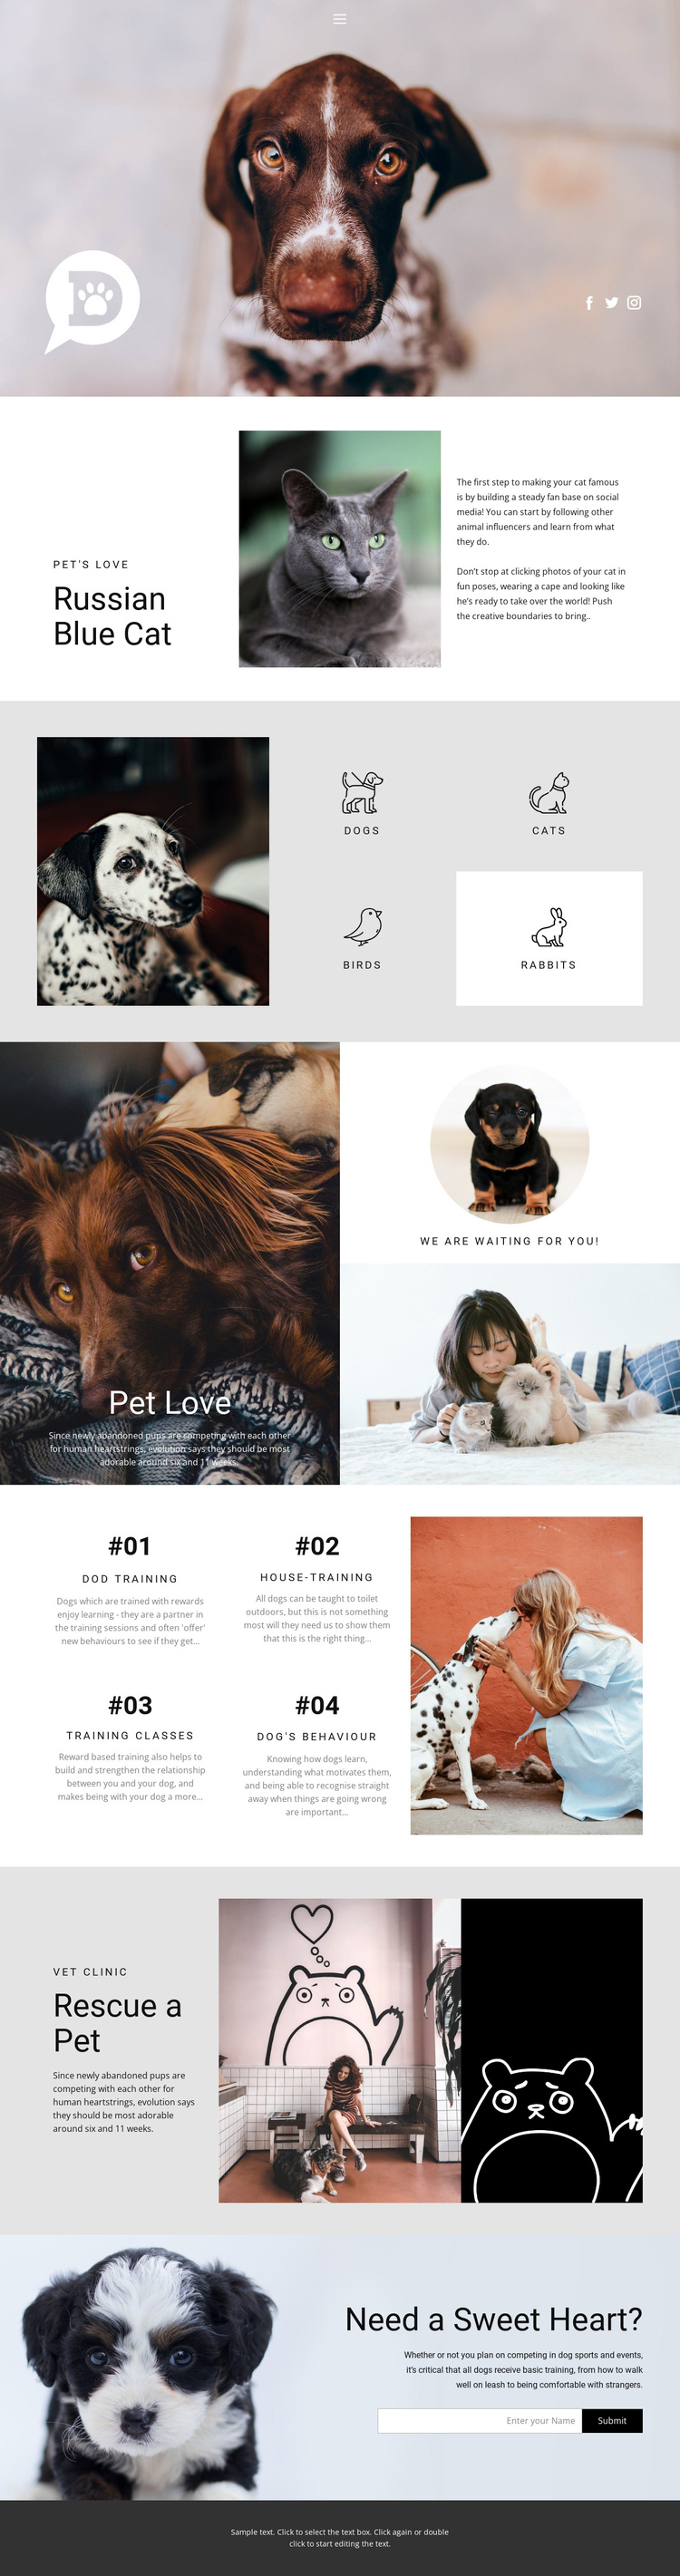 Care for pets and animals Website Builder Software